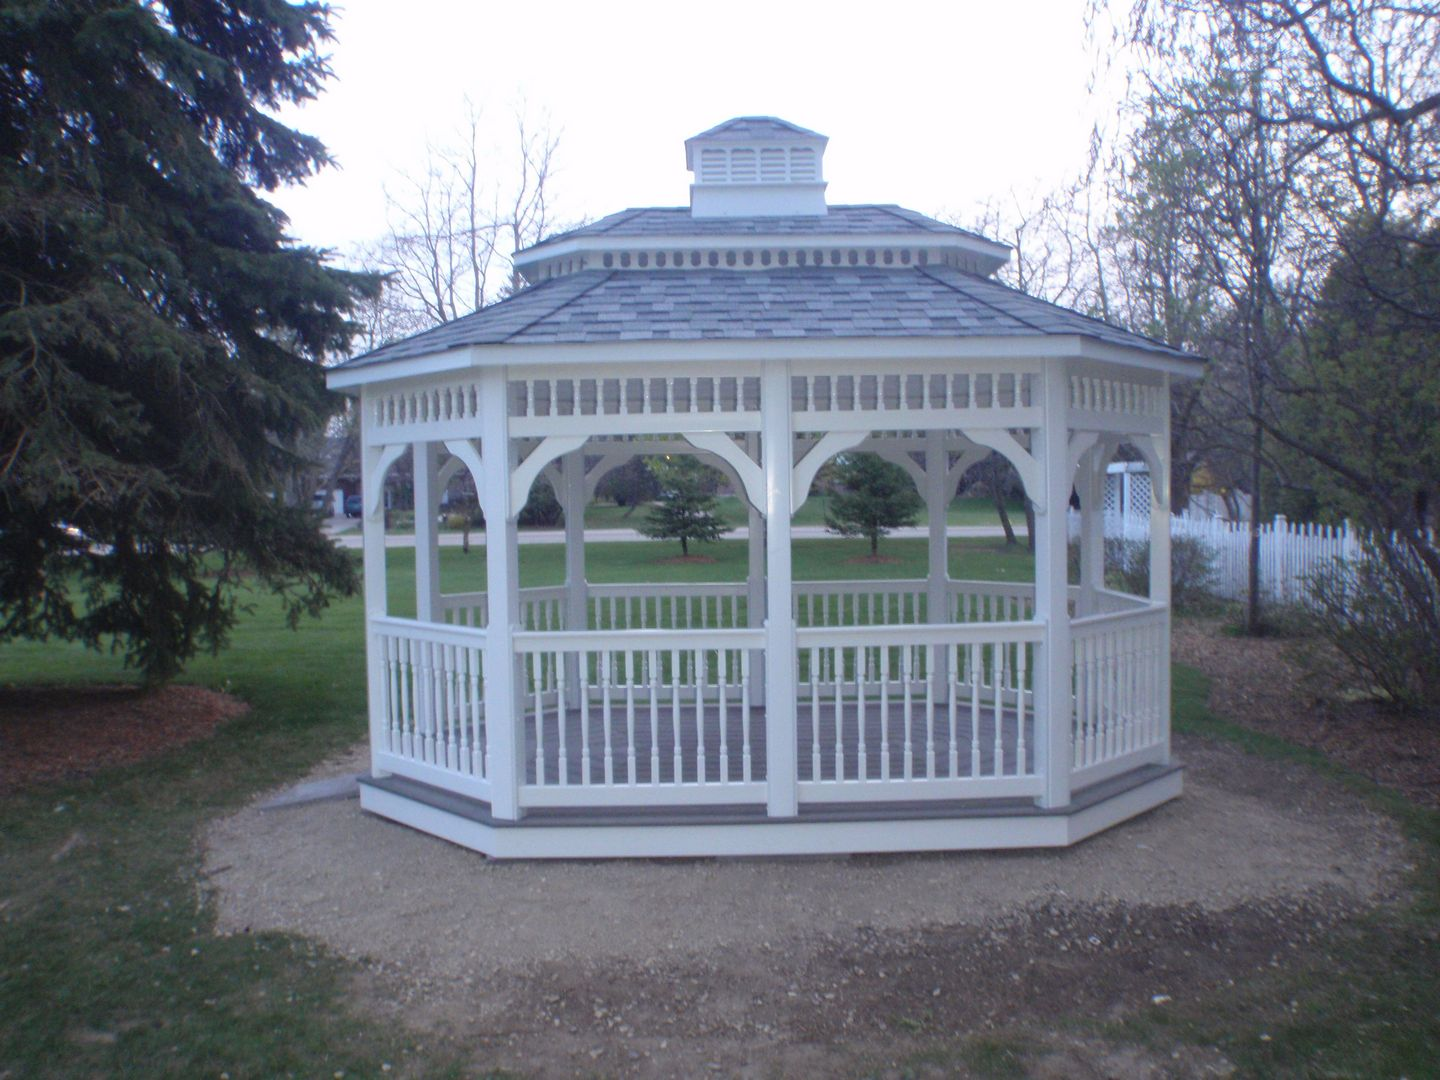 12 by 16 foot oval gazebo